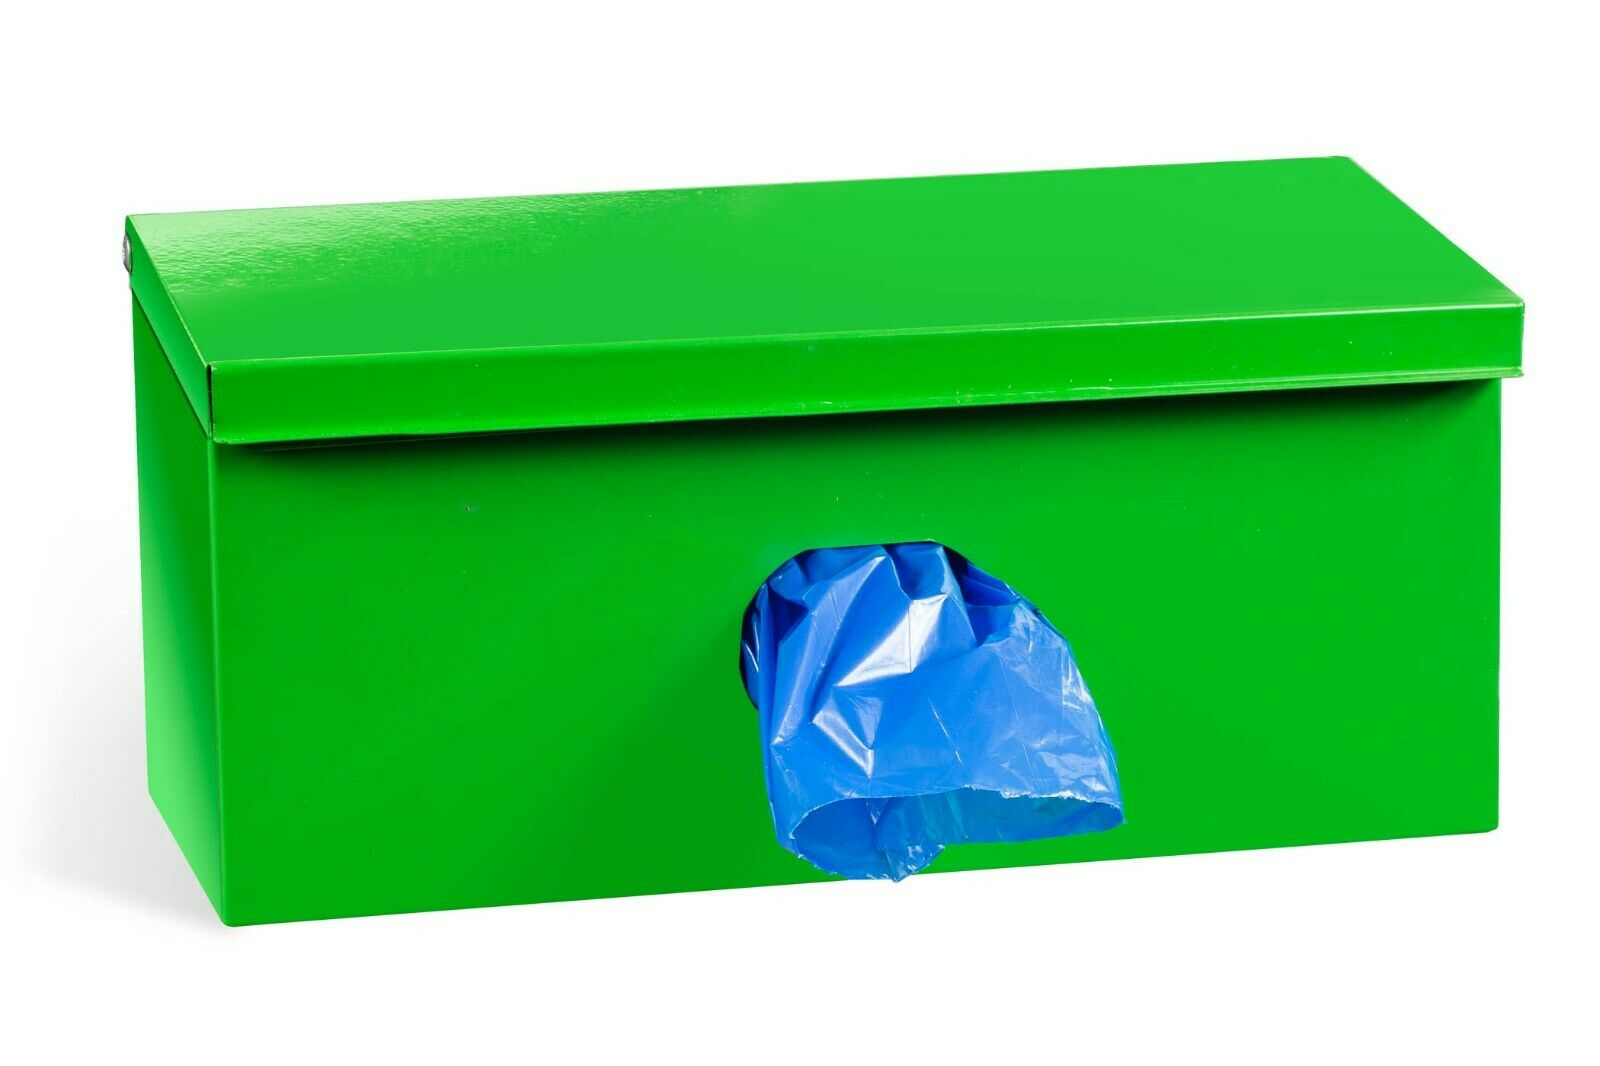 Canine Waste Bag Dispenser With Lock and 1000 Biodegradable Dog Pet Bags  42.5